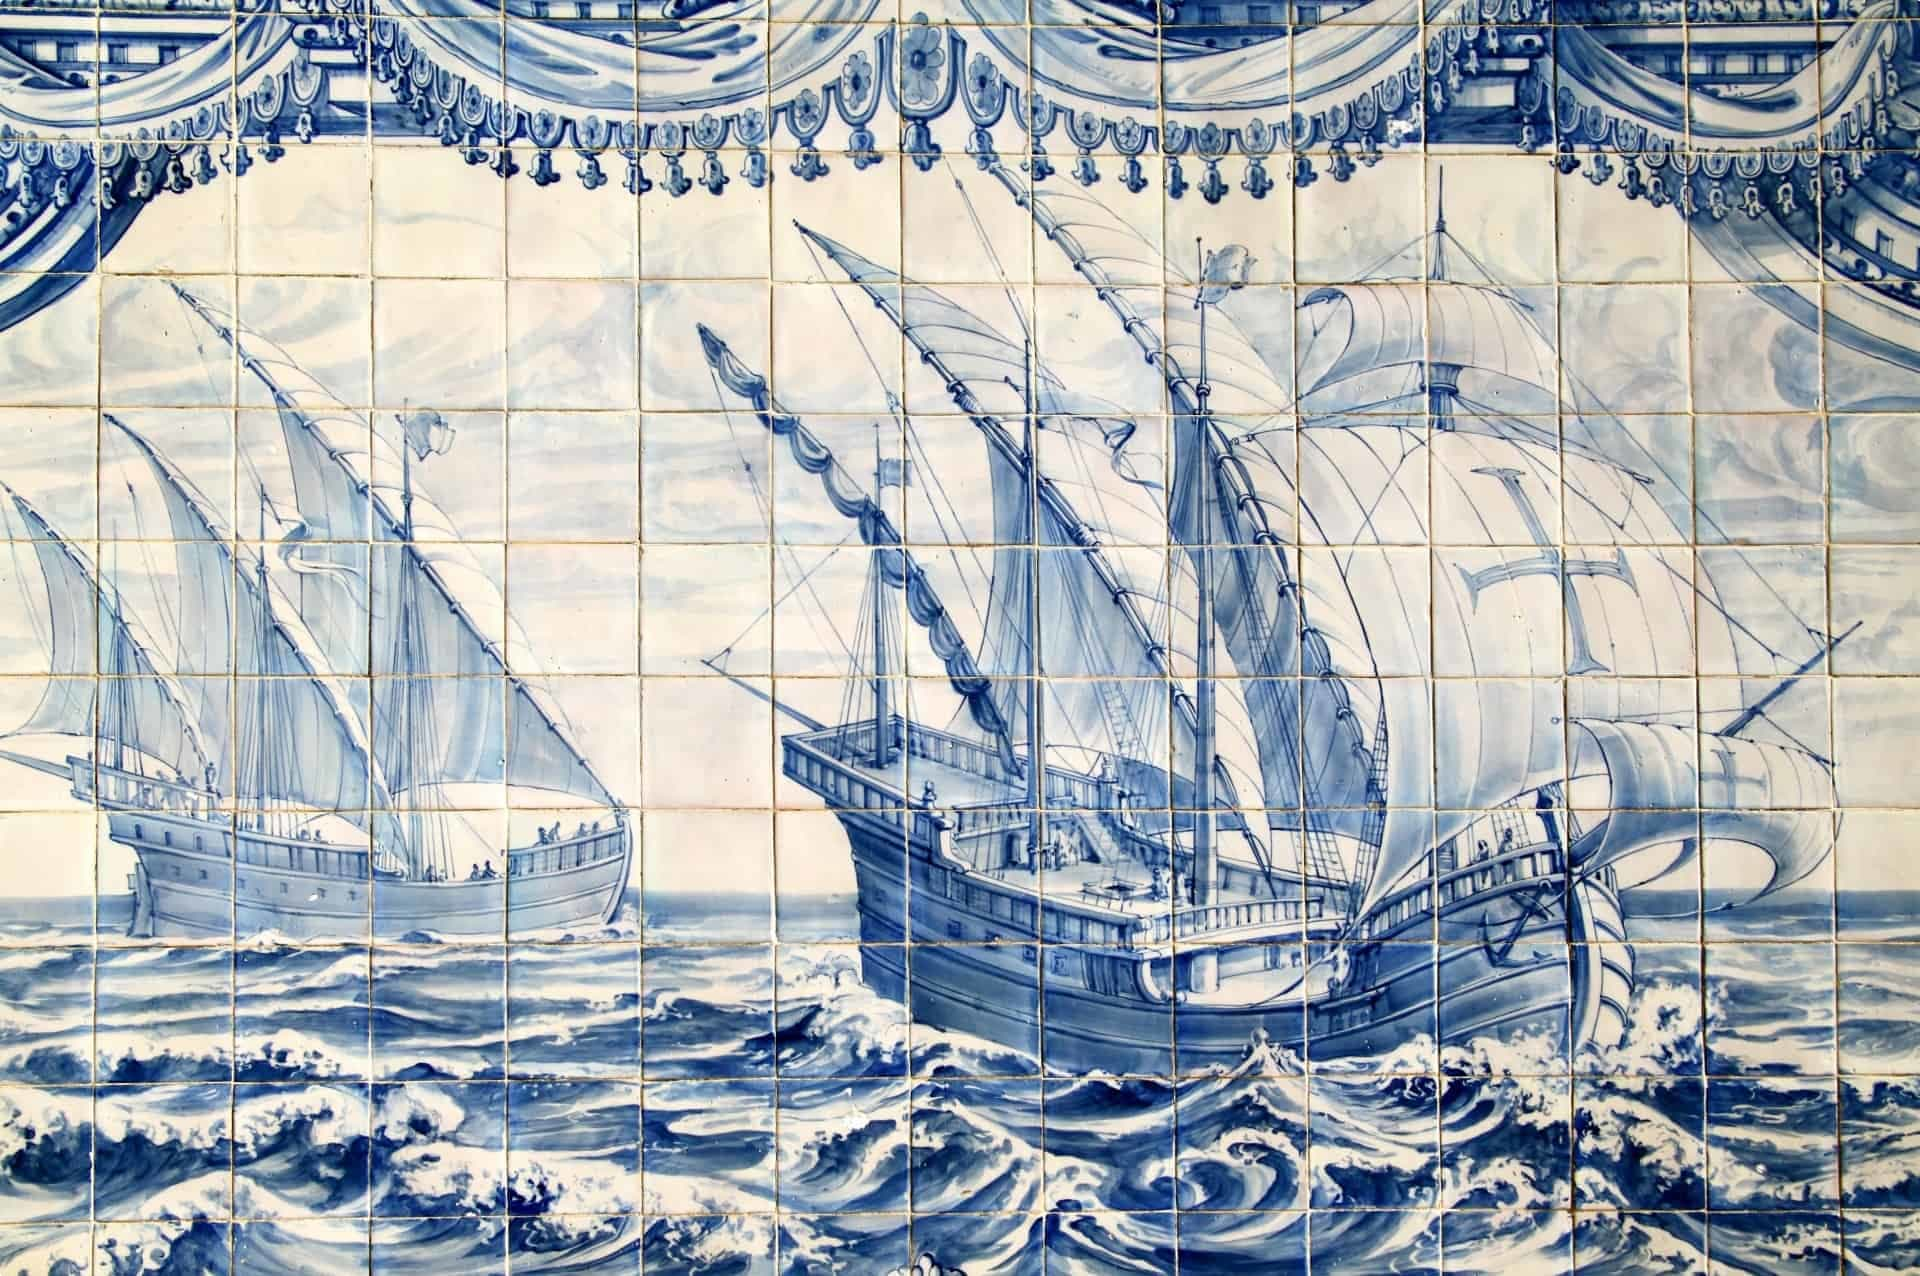 Portugal - ships